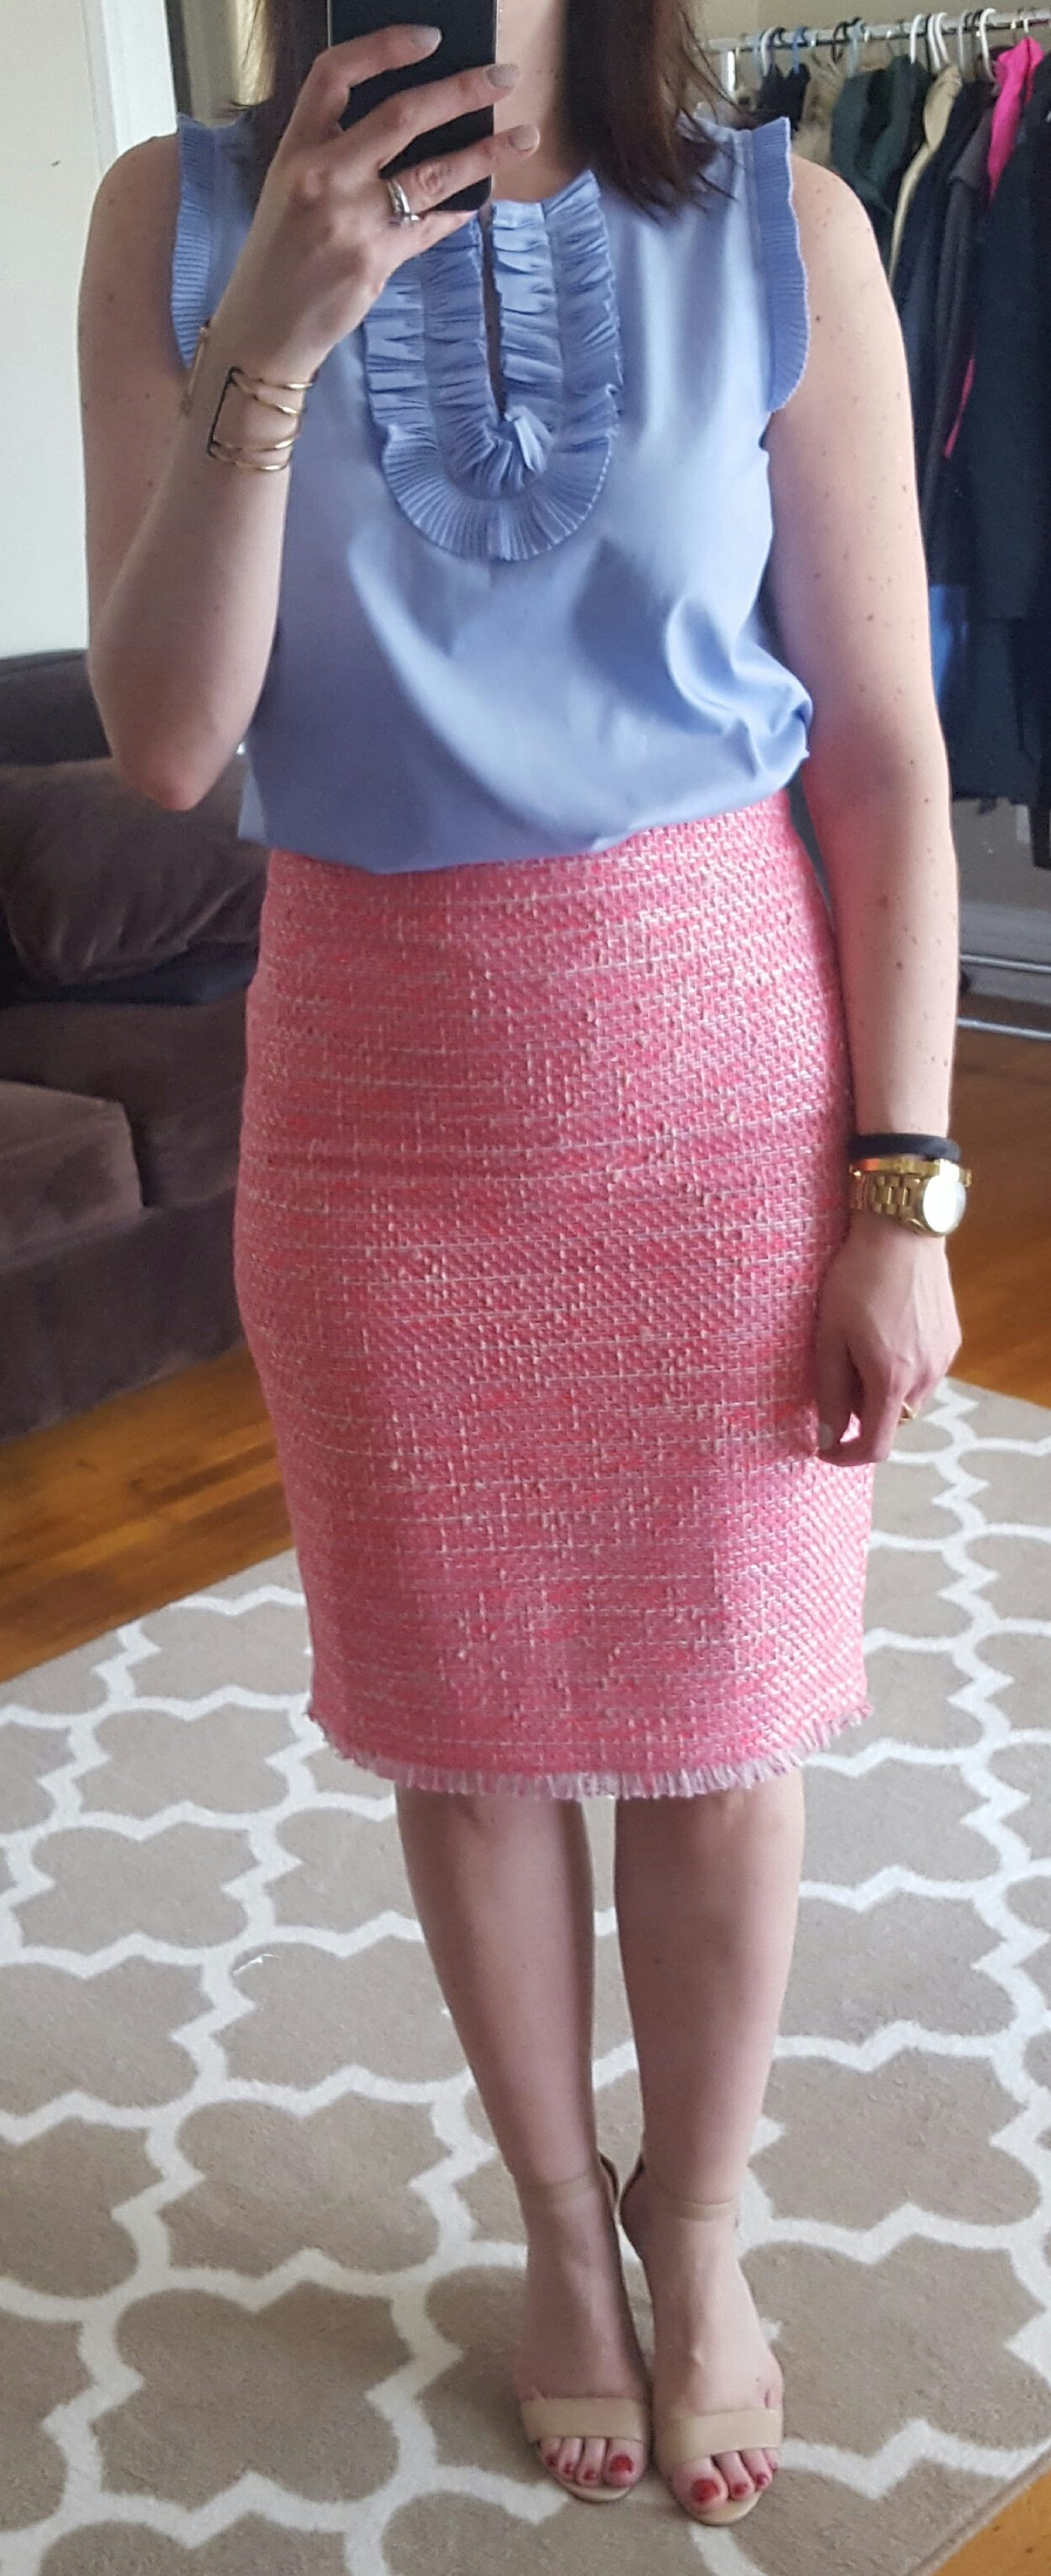 d37ddbe2fc5d Next up, from my online order, the Pencil skirt in neon fuchsia tweed.